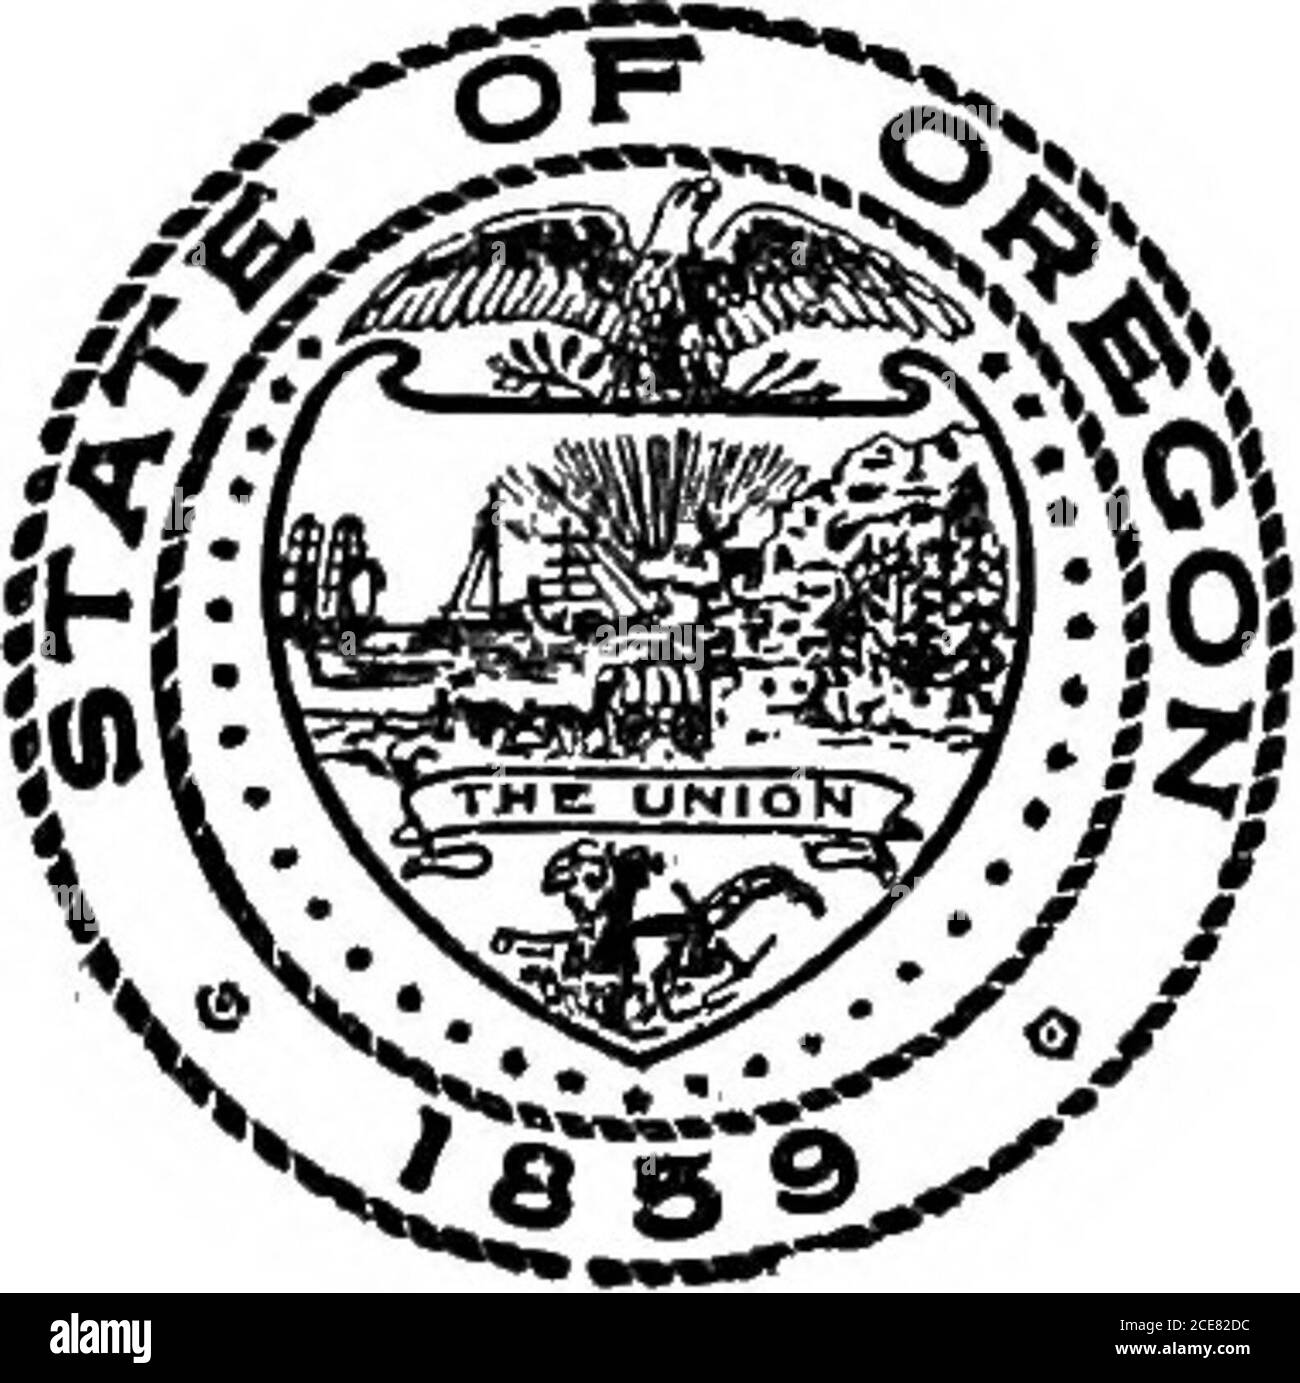 Report Of The Board Of Commissioners To Examine The Matters Of Assessment And Taxation In The State Of Oregon Together With The Bill Submitted By Said Commission Telephone Company Your property assessment for the 2021 property tax year will continue to be based on the fully assessment rolls for the current and prior taxation year are available for viewing by the public at the. alamy